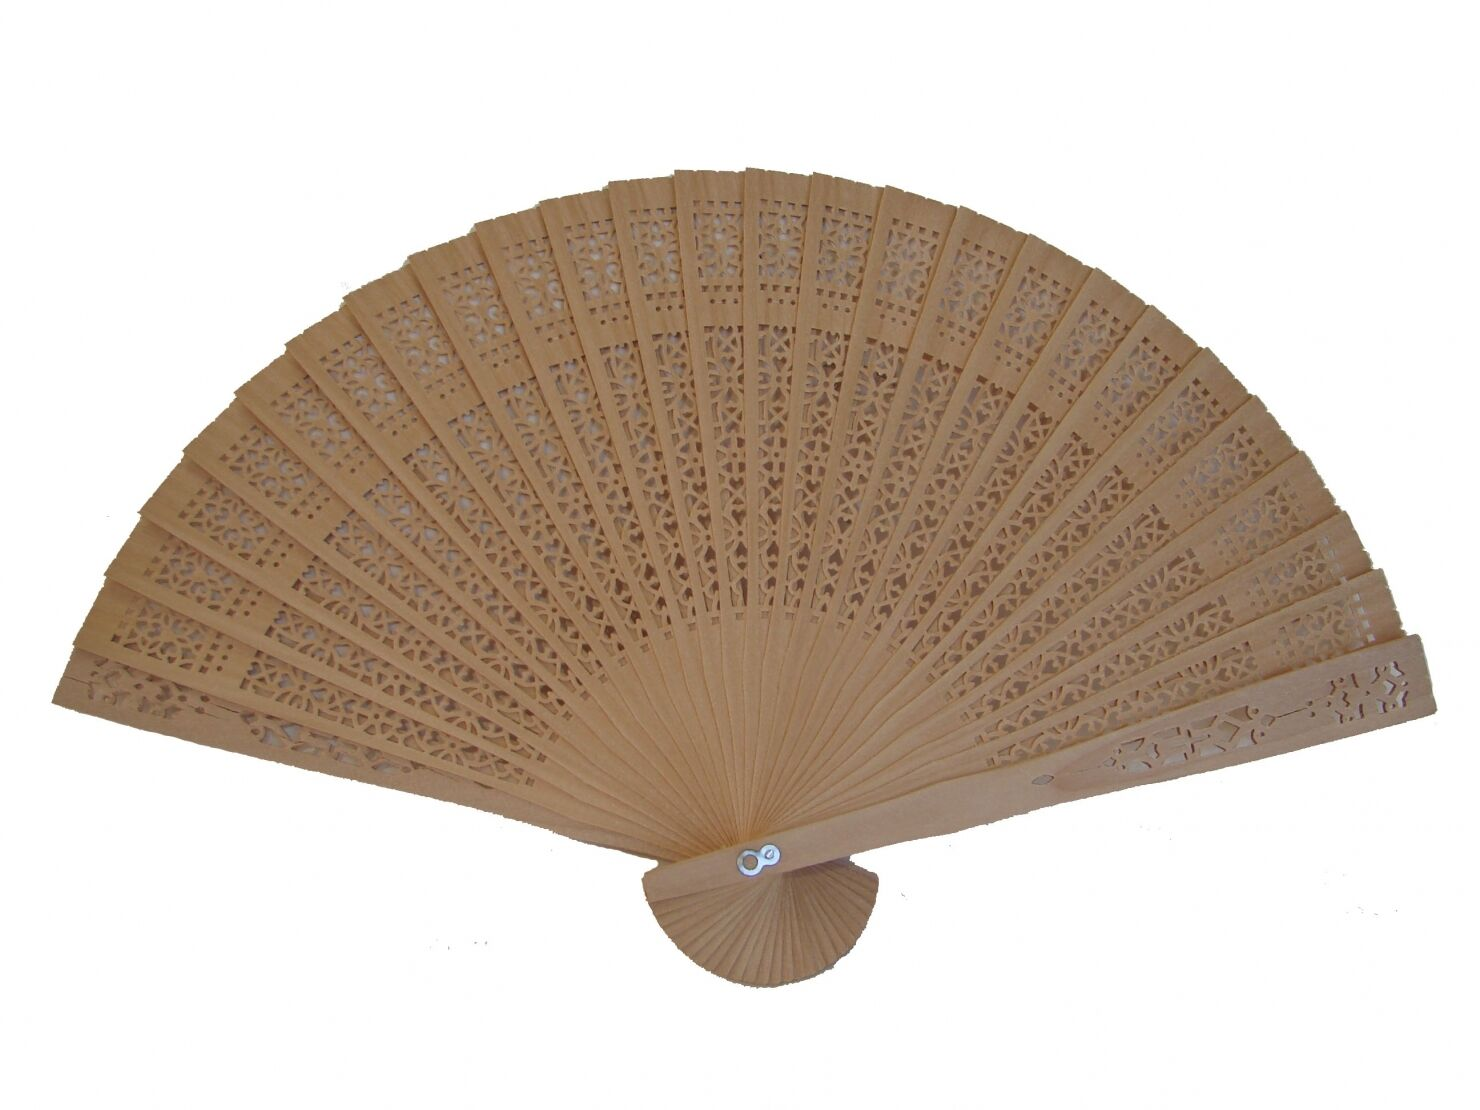 4 Pcs of Chinese Sandalwood Folding Hand Fan for Wedding Bridal Party, Baby Show